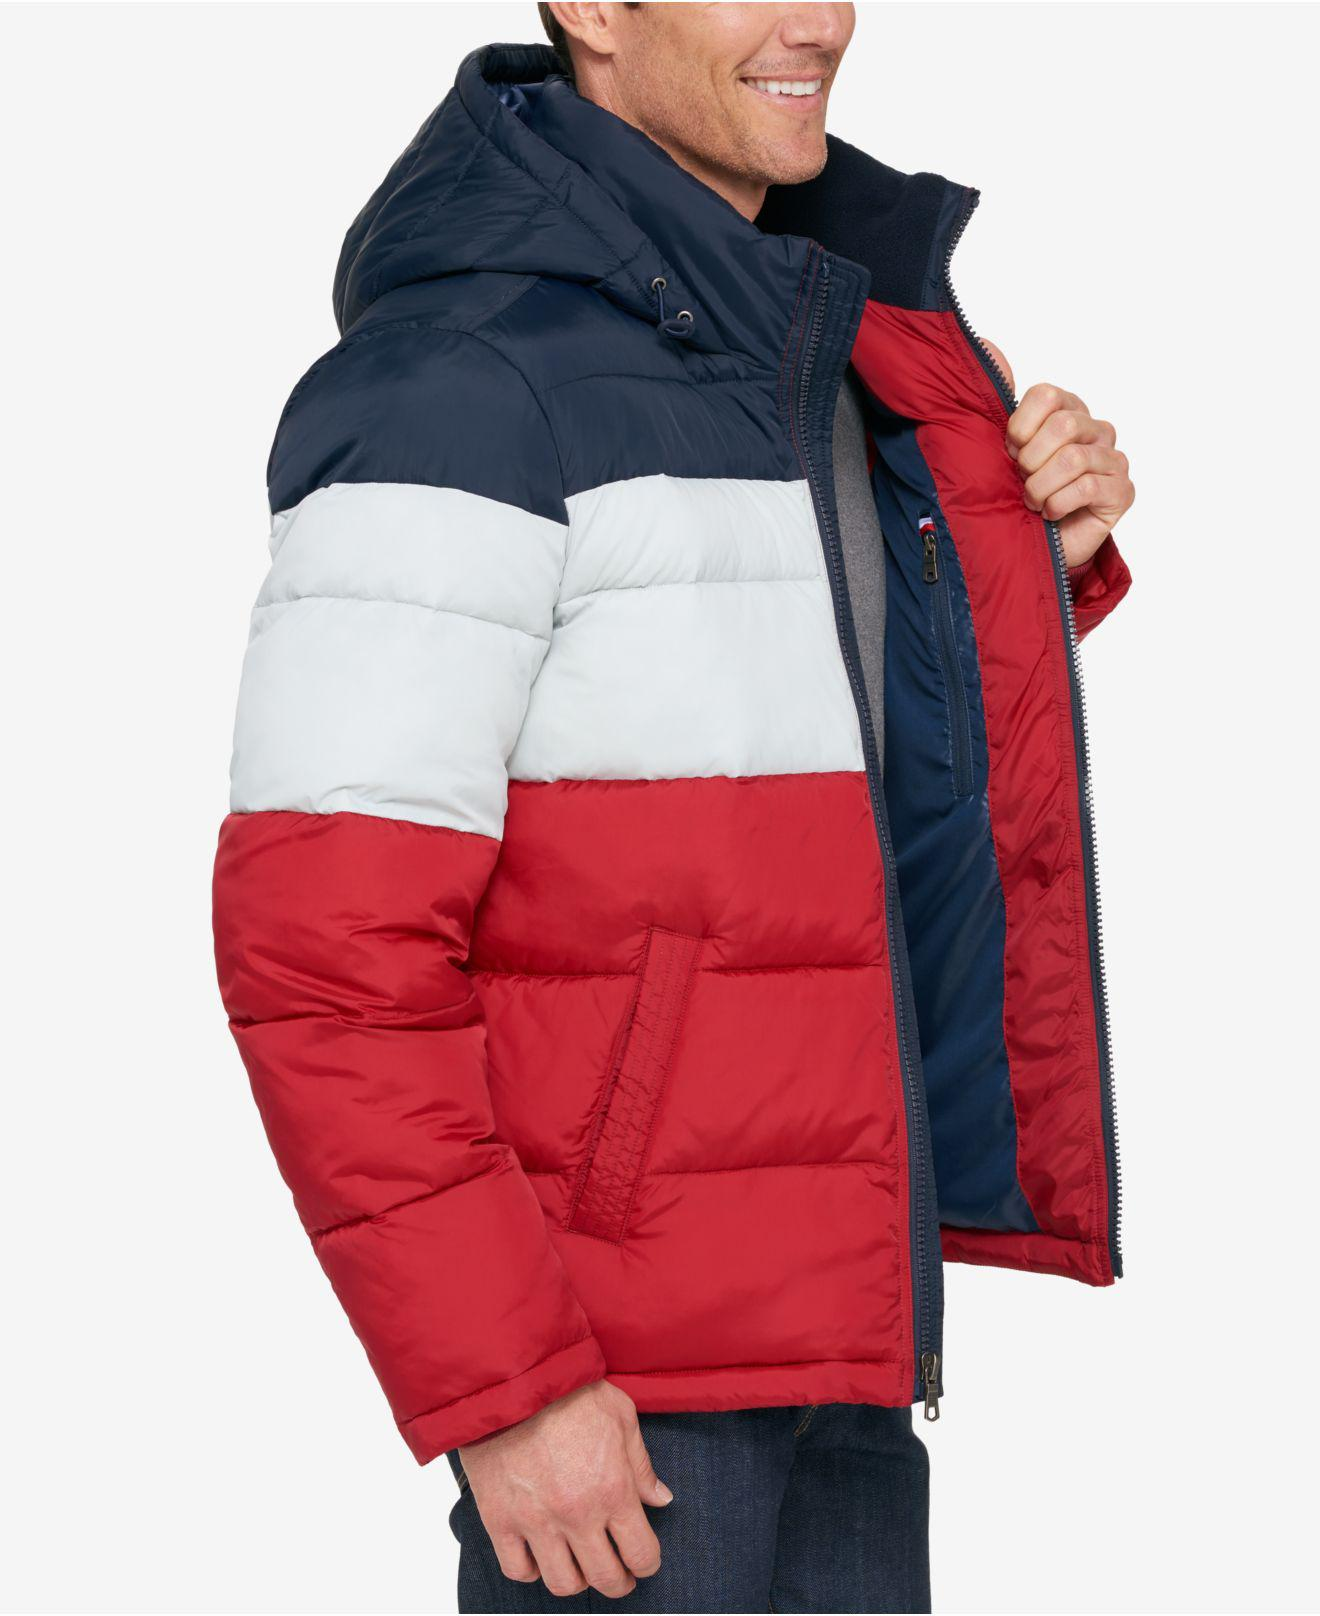 1a2d7c08130a5 Lyst - Tommy Hilfiger Men s Classic Hooded Puffer Jacket for Men